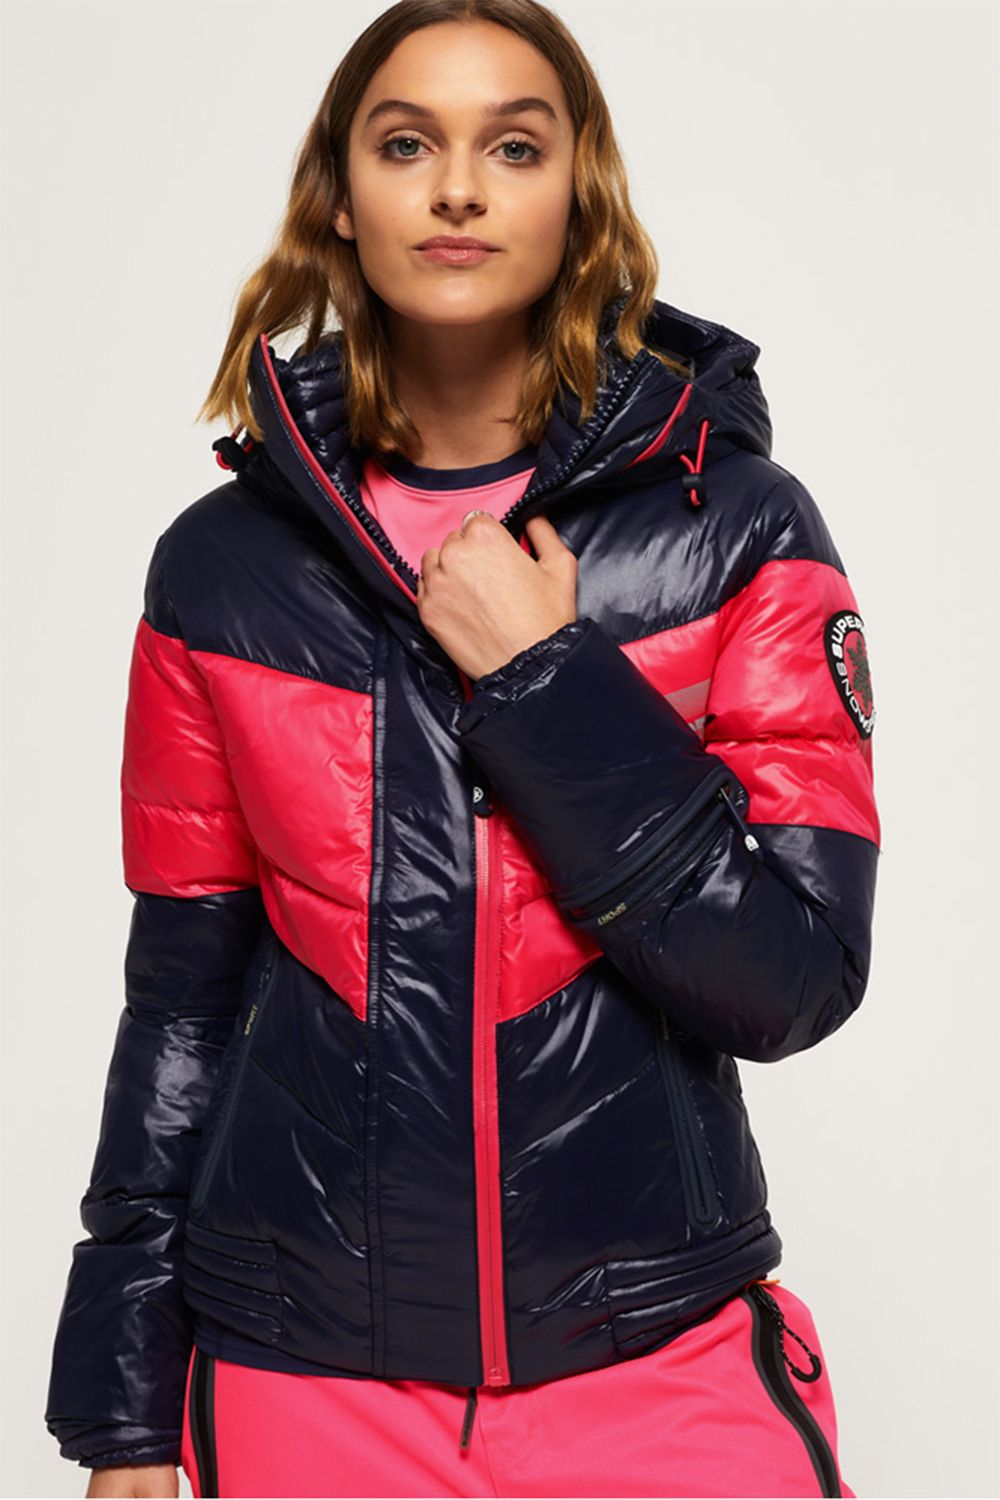 22cbabbf7 Women's ski wear: the best and most stylish snow-ready clothes for the  slopes this season 2018/2019